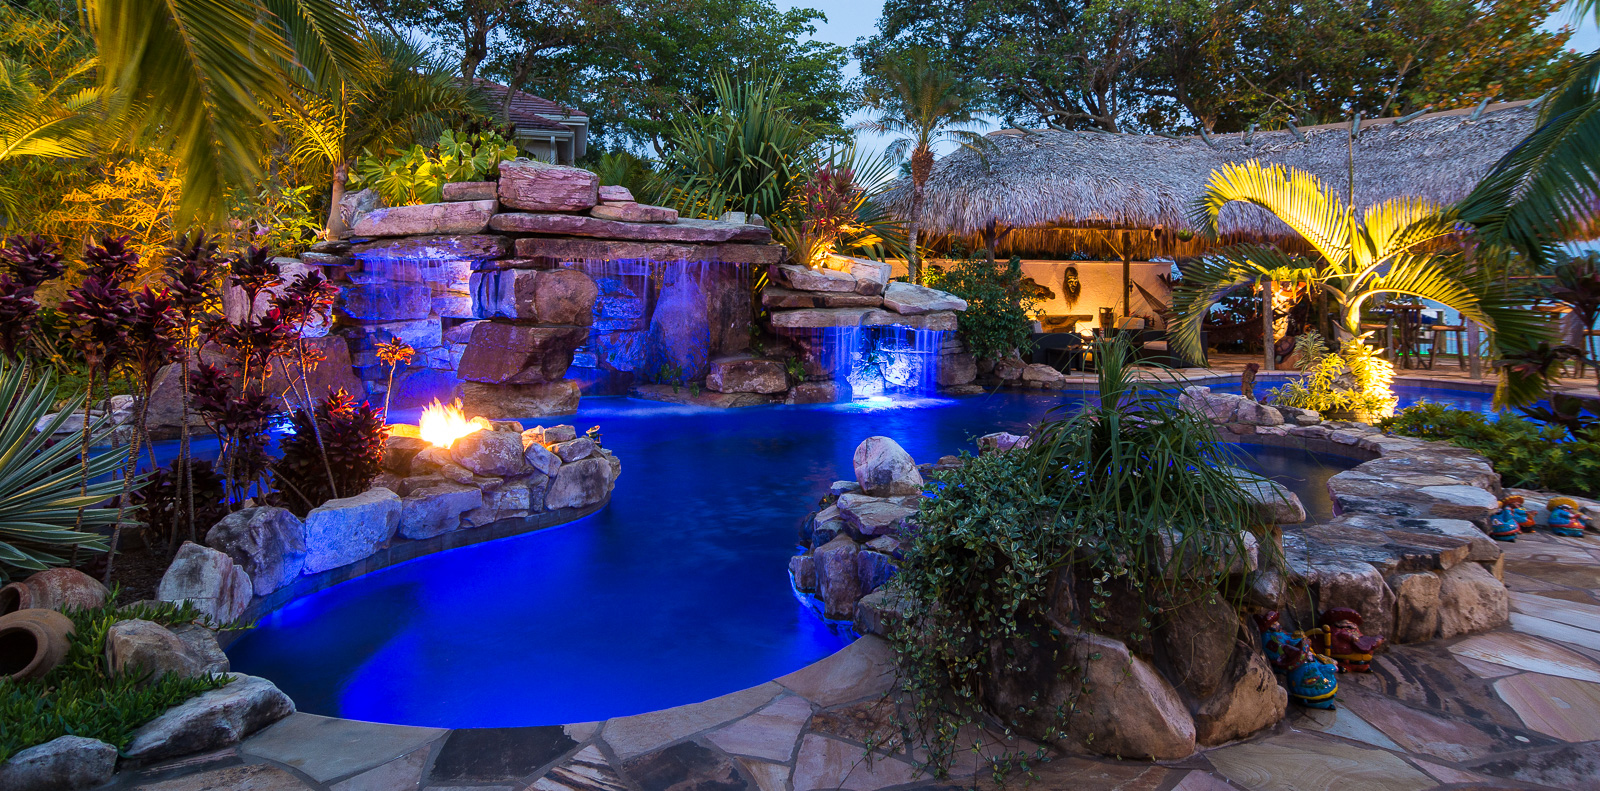 custom rock waterfall pool grotto spa natural stream. Black Bedroom Furniture Sets. Home Design Ideas